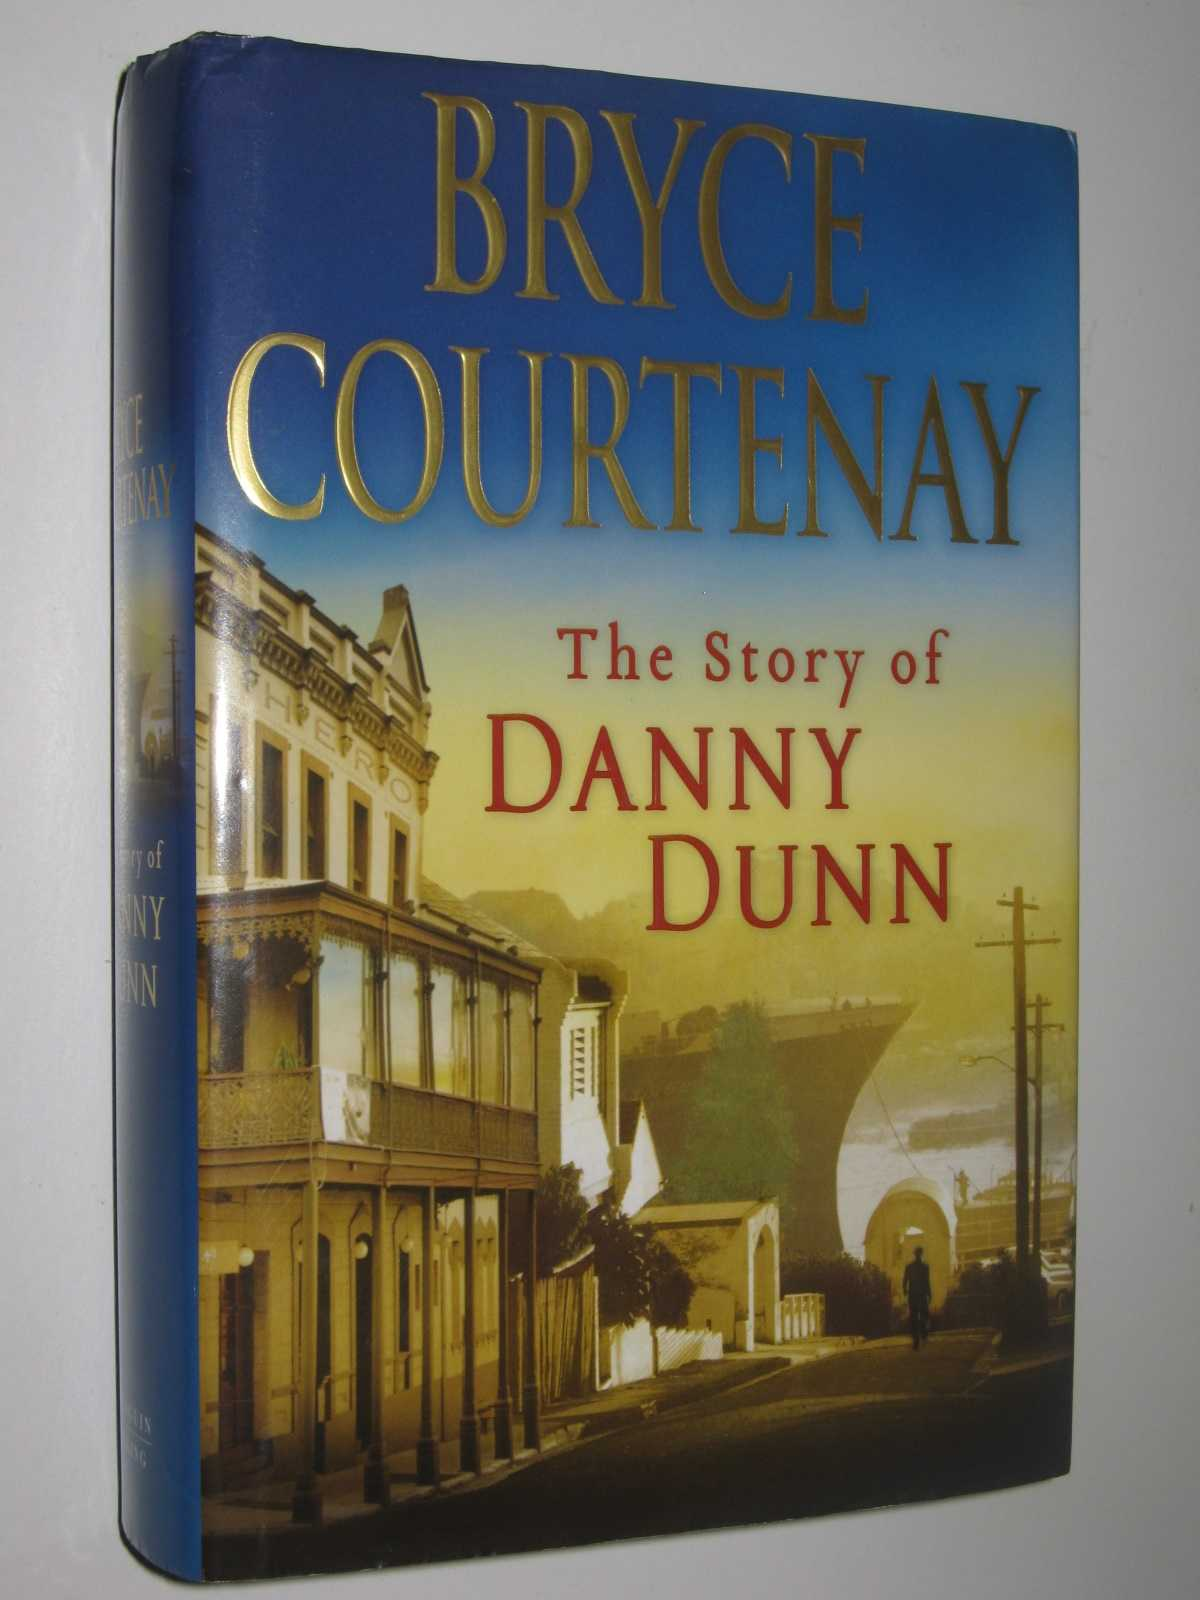 The Story of Danny Dunn, Courtenay, Bryce